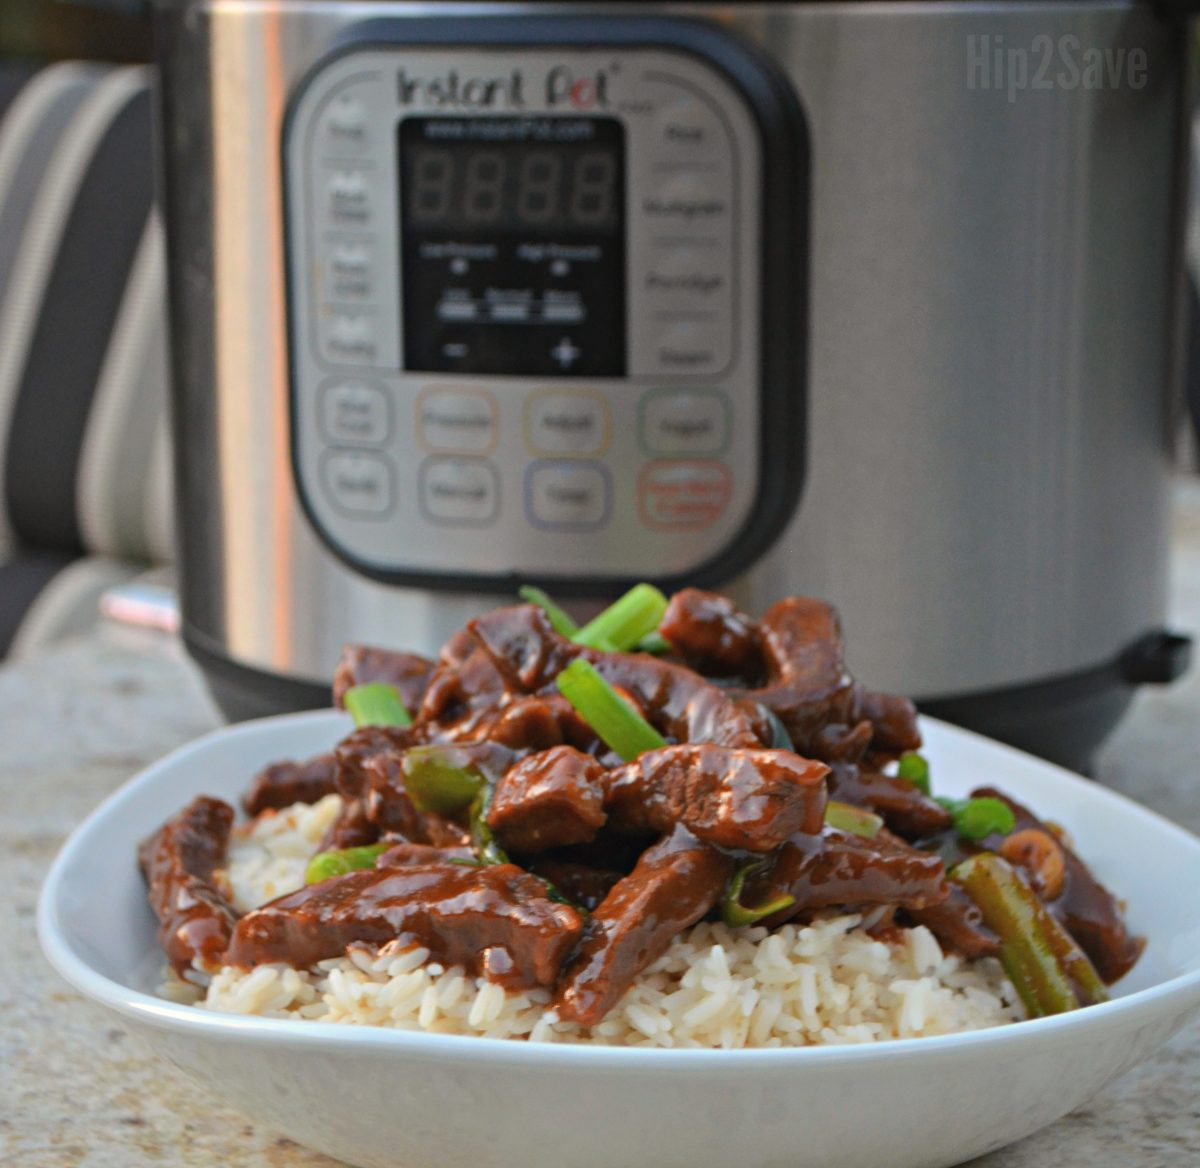 Mongolian beef served over rice in front of an instant pot